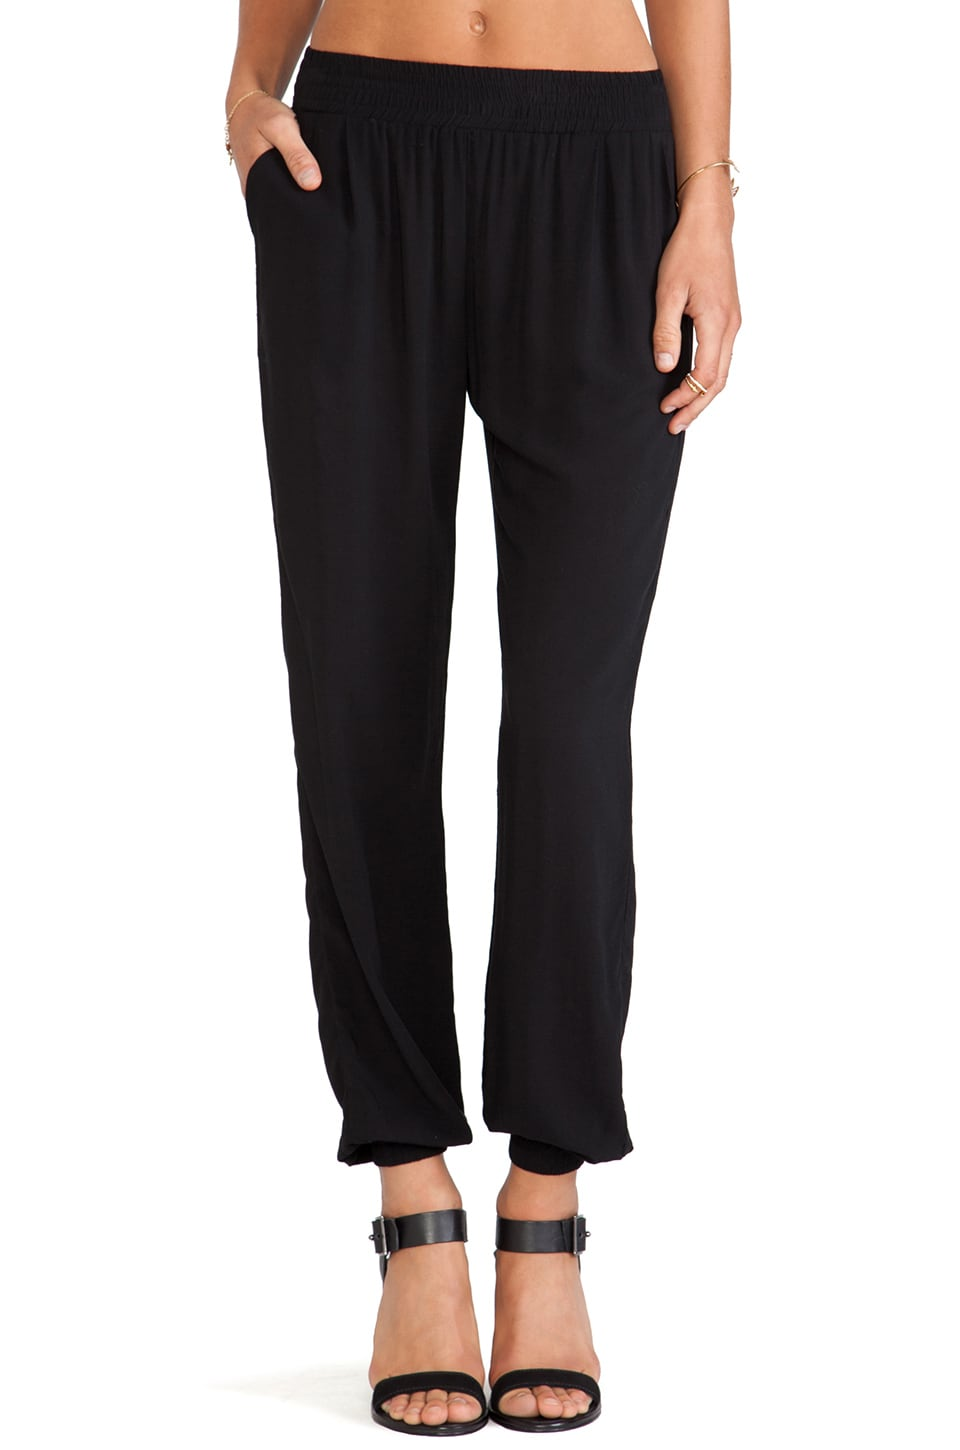 Lisakai Pant in Black